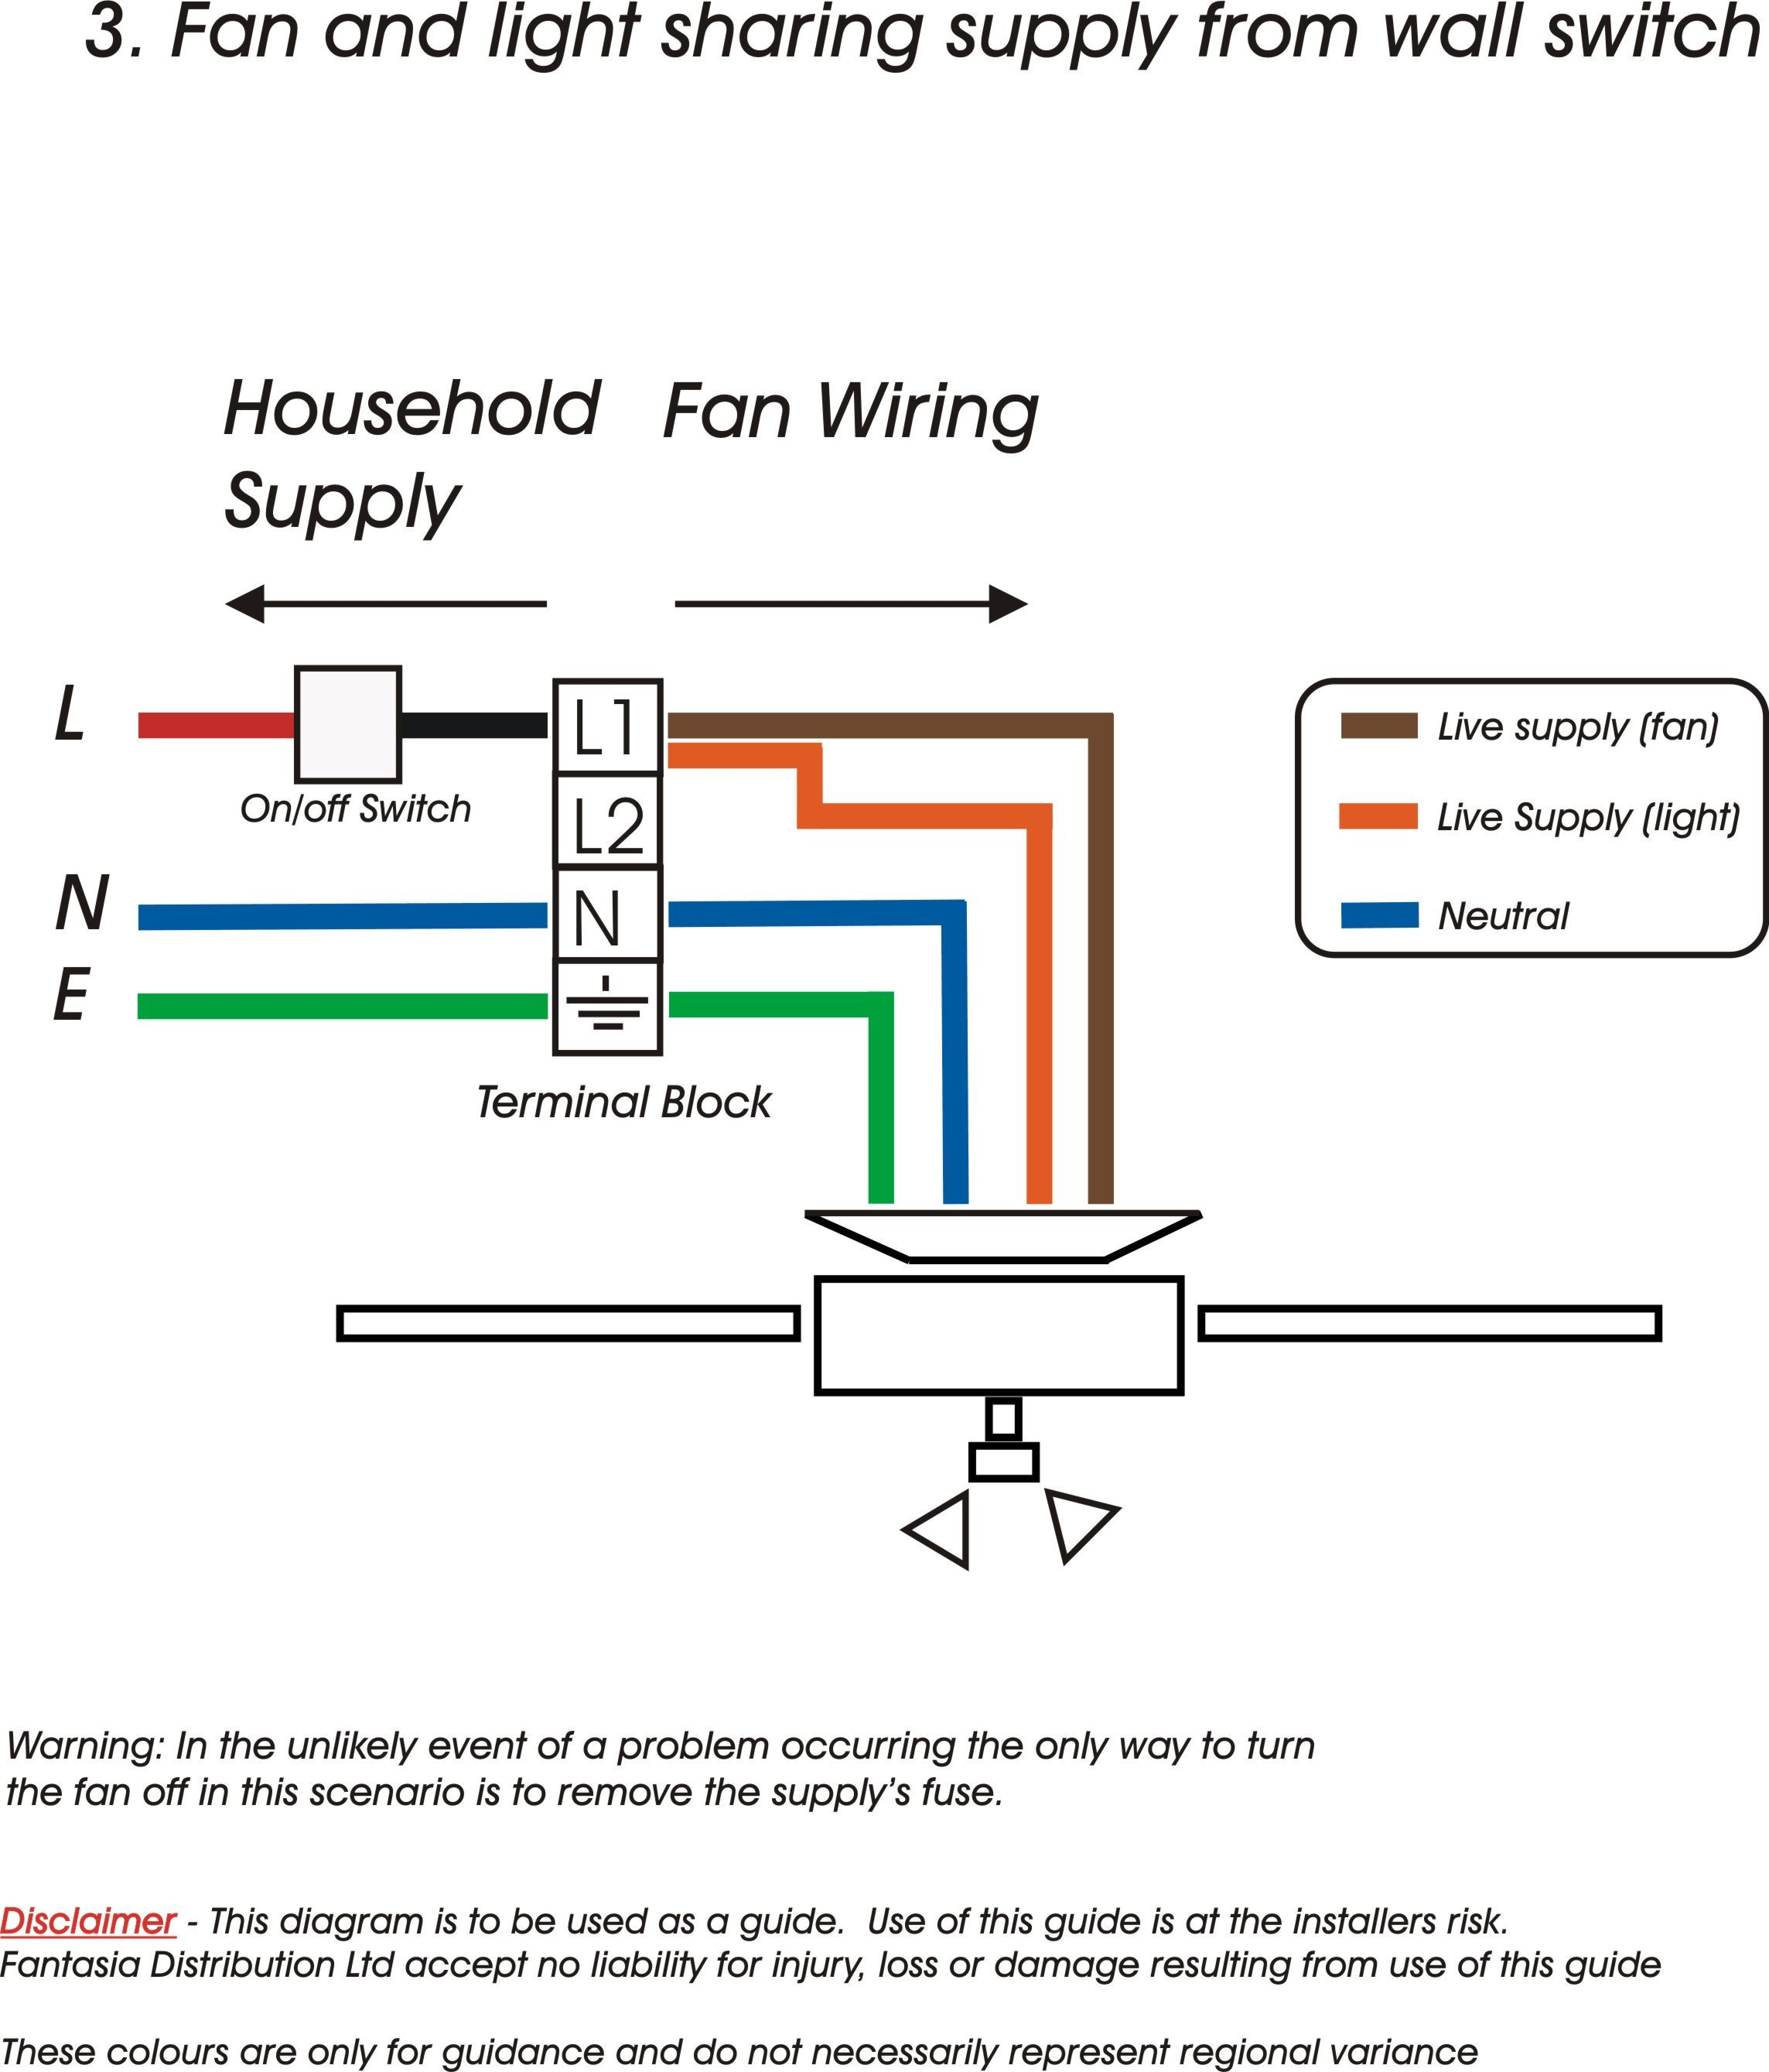 Wiring Diagram For Harbor Breeze 3 Sd Ceiling Fan - Wiring ... on